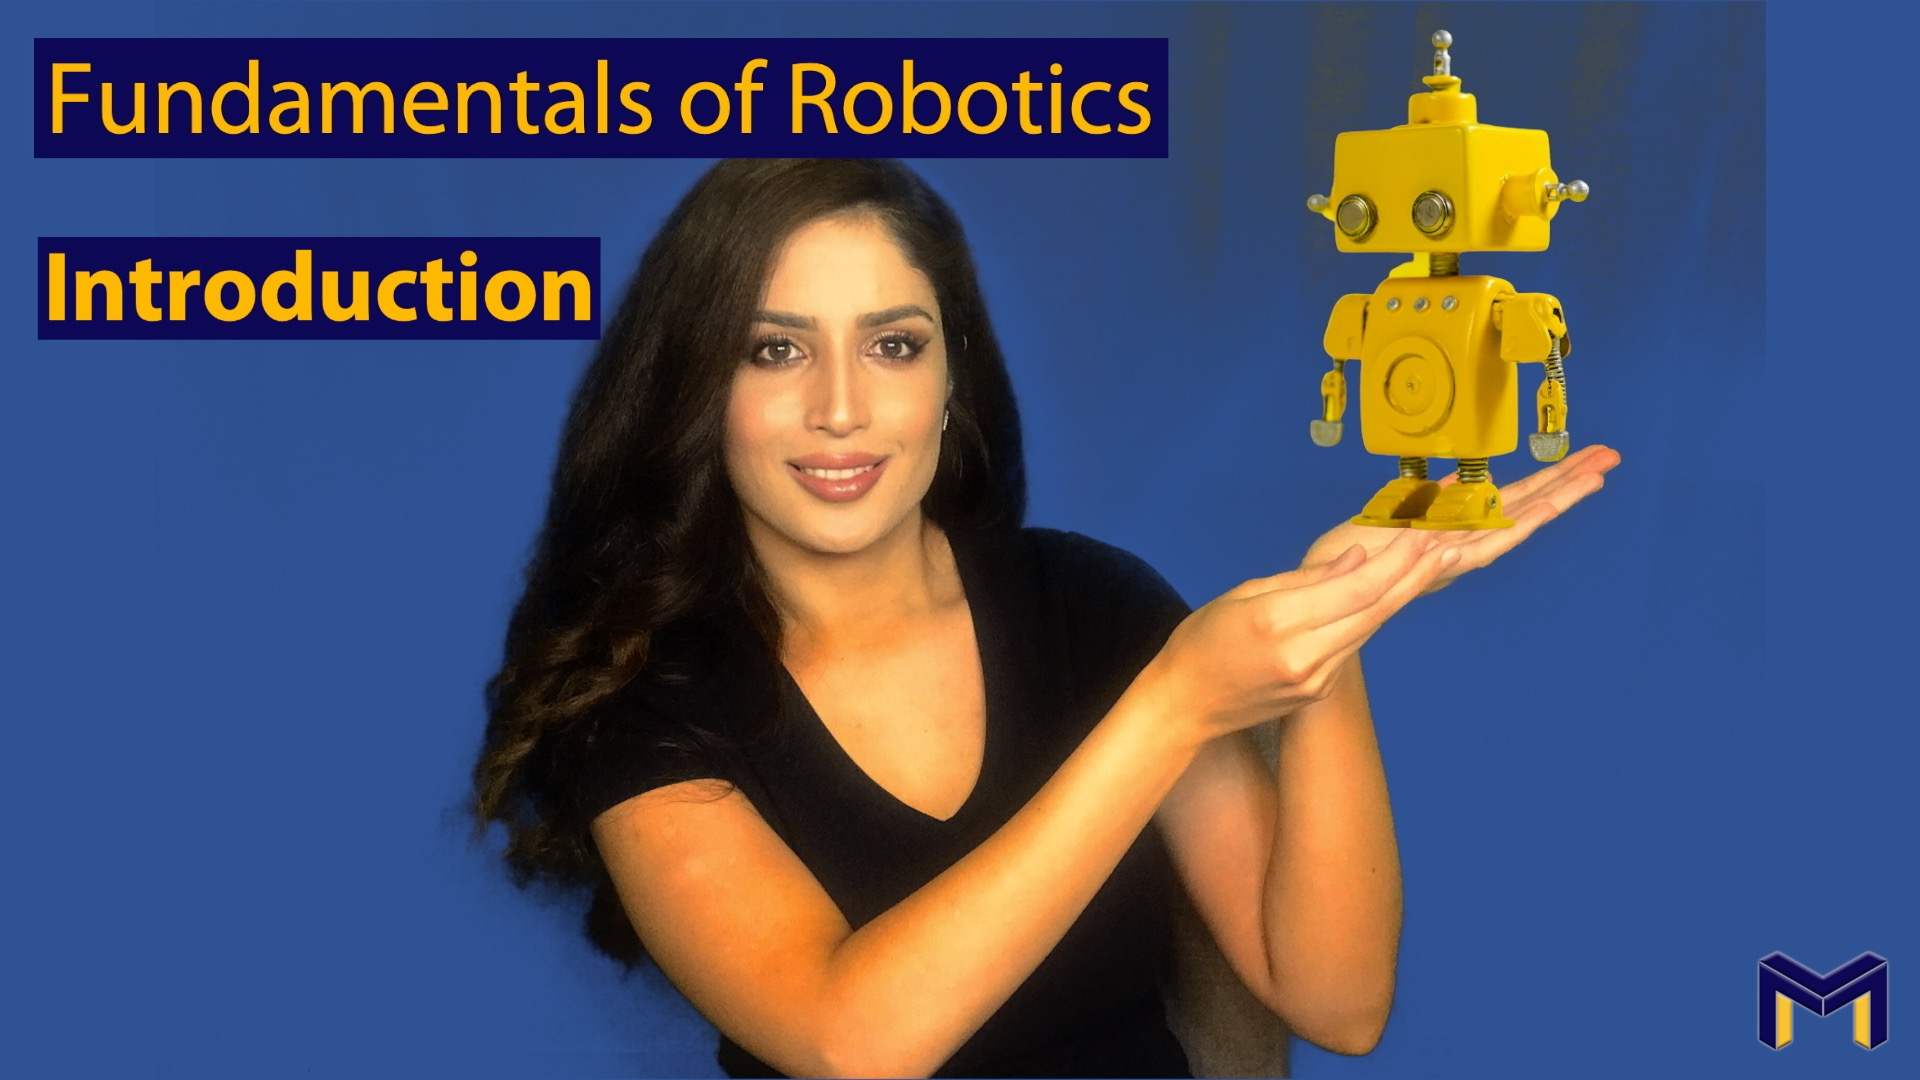 Fundamentals of Robotics: Introduction